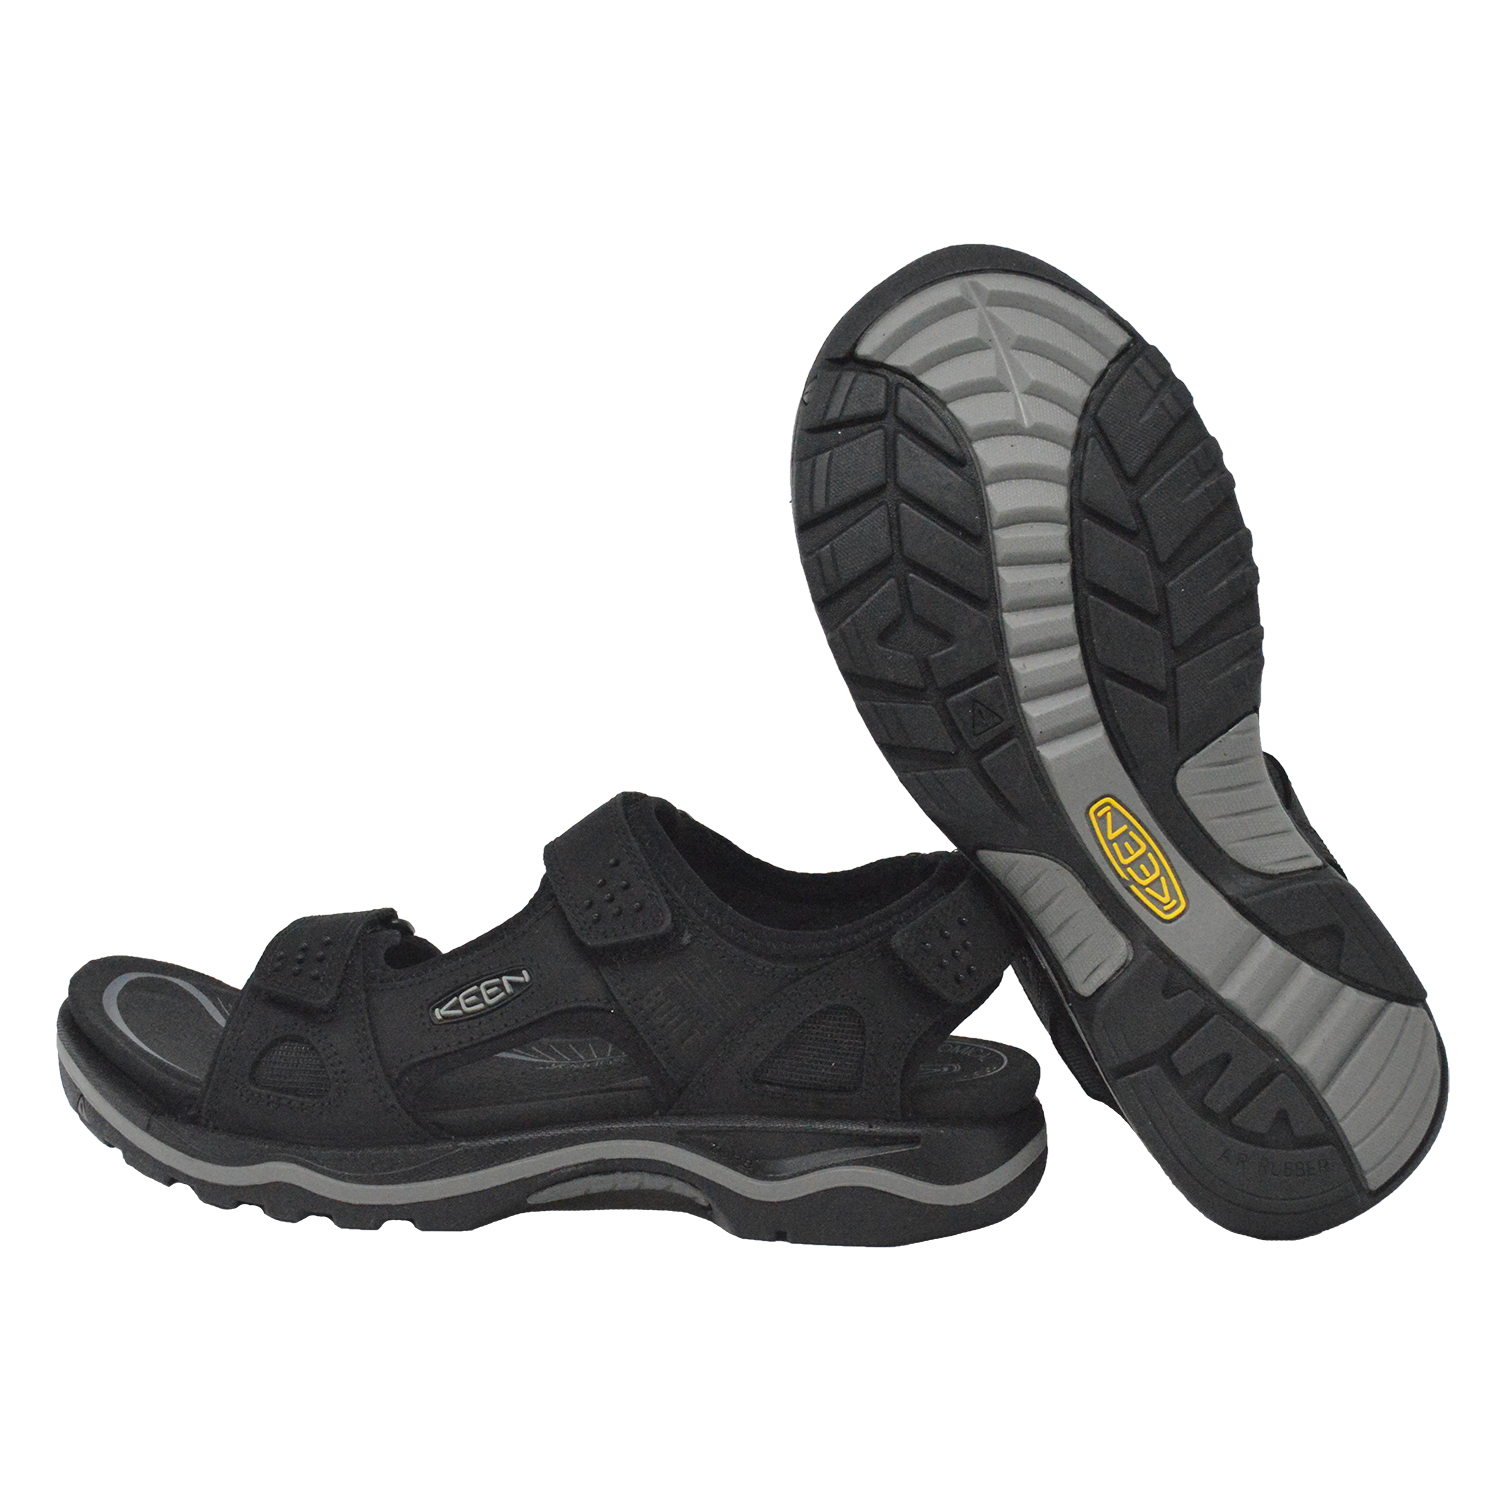 Keen Men's Rialto 3 Point Adjustable Strap Fashion Sandals Black Neutral Gray by Keen